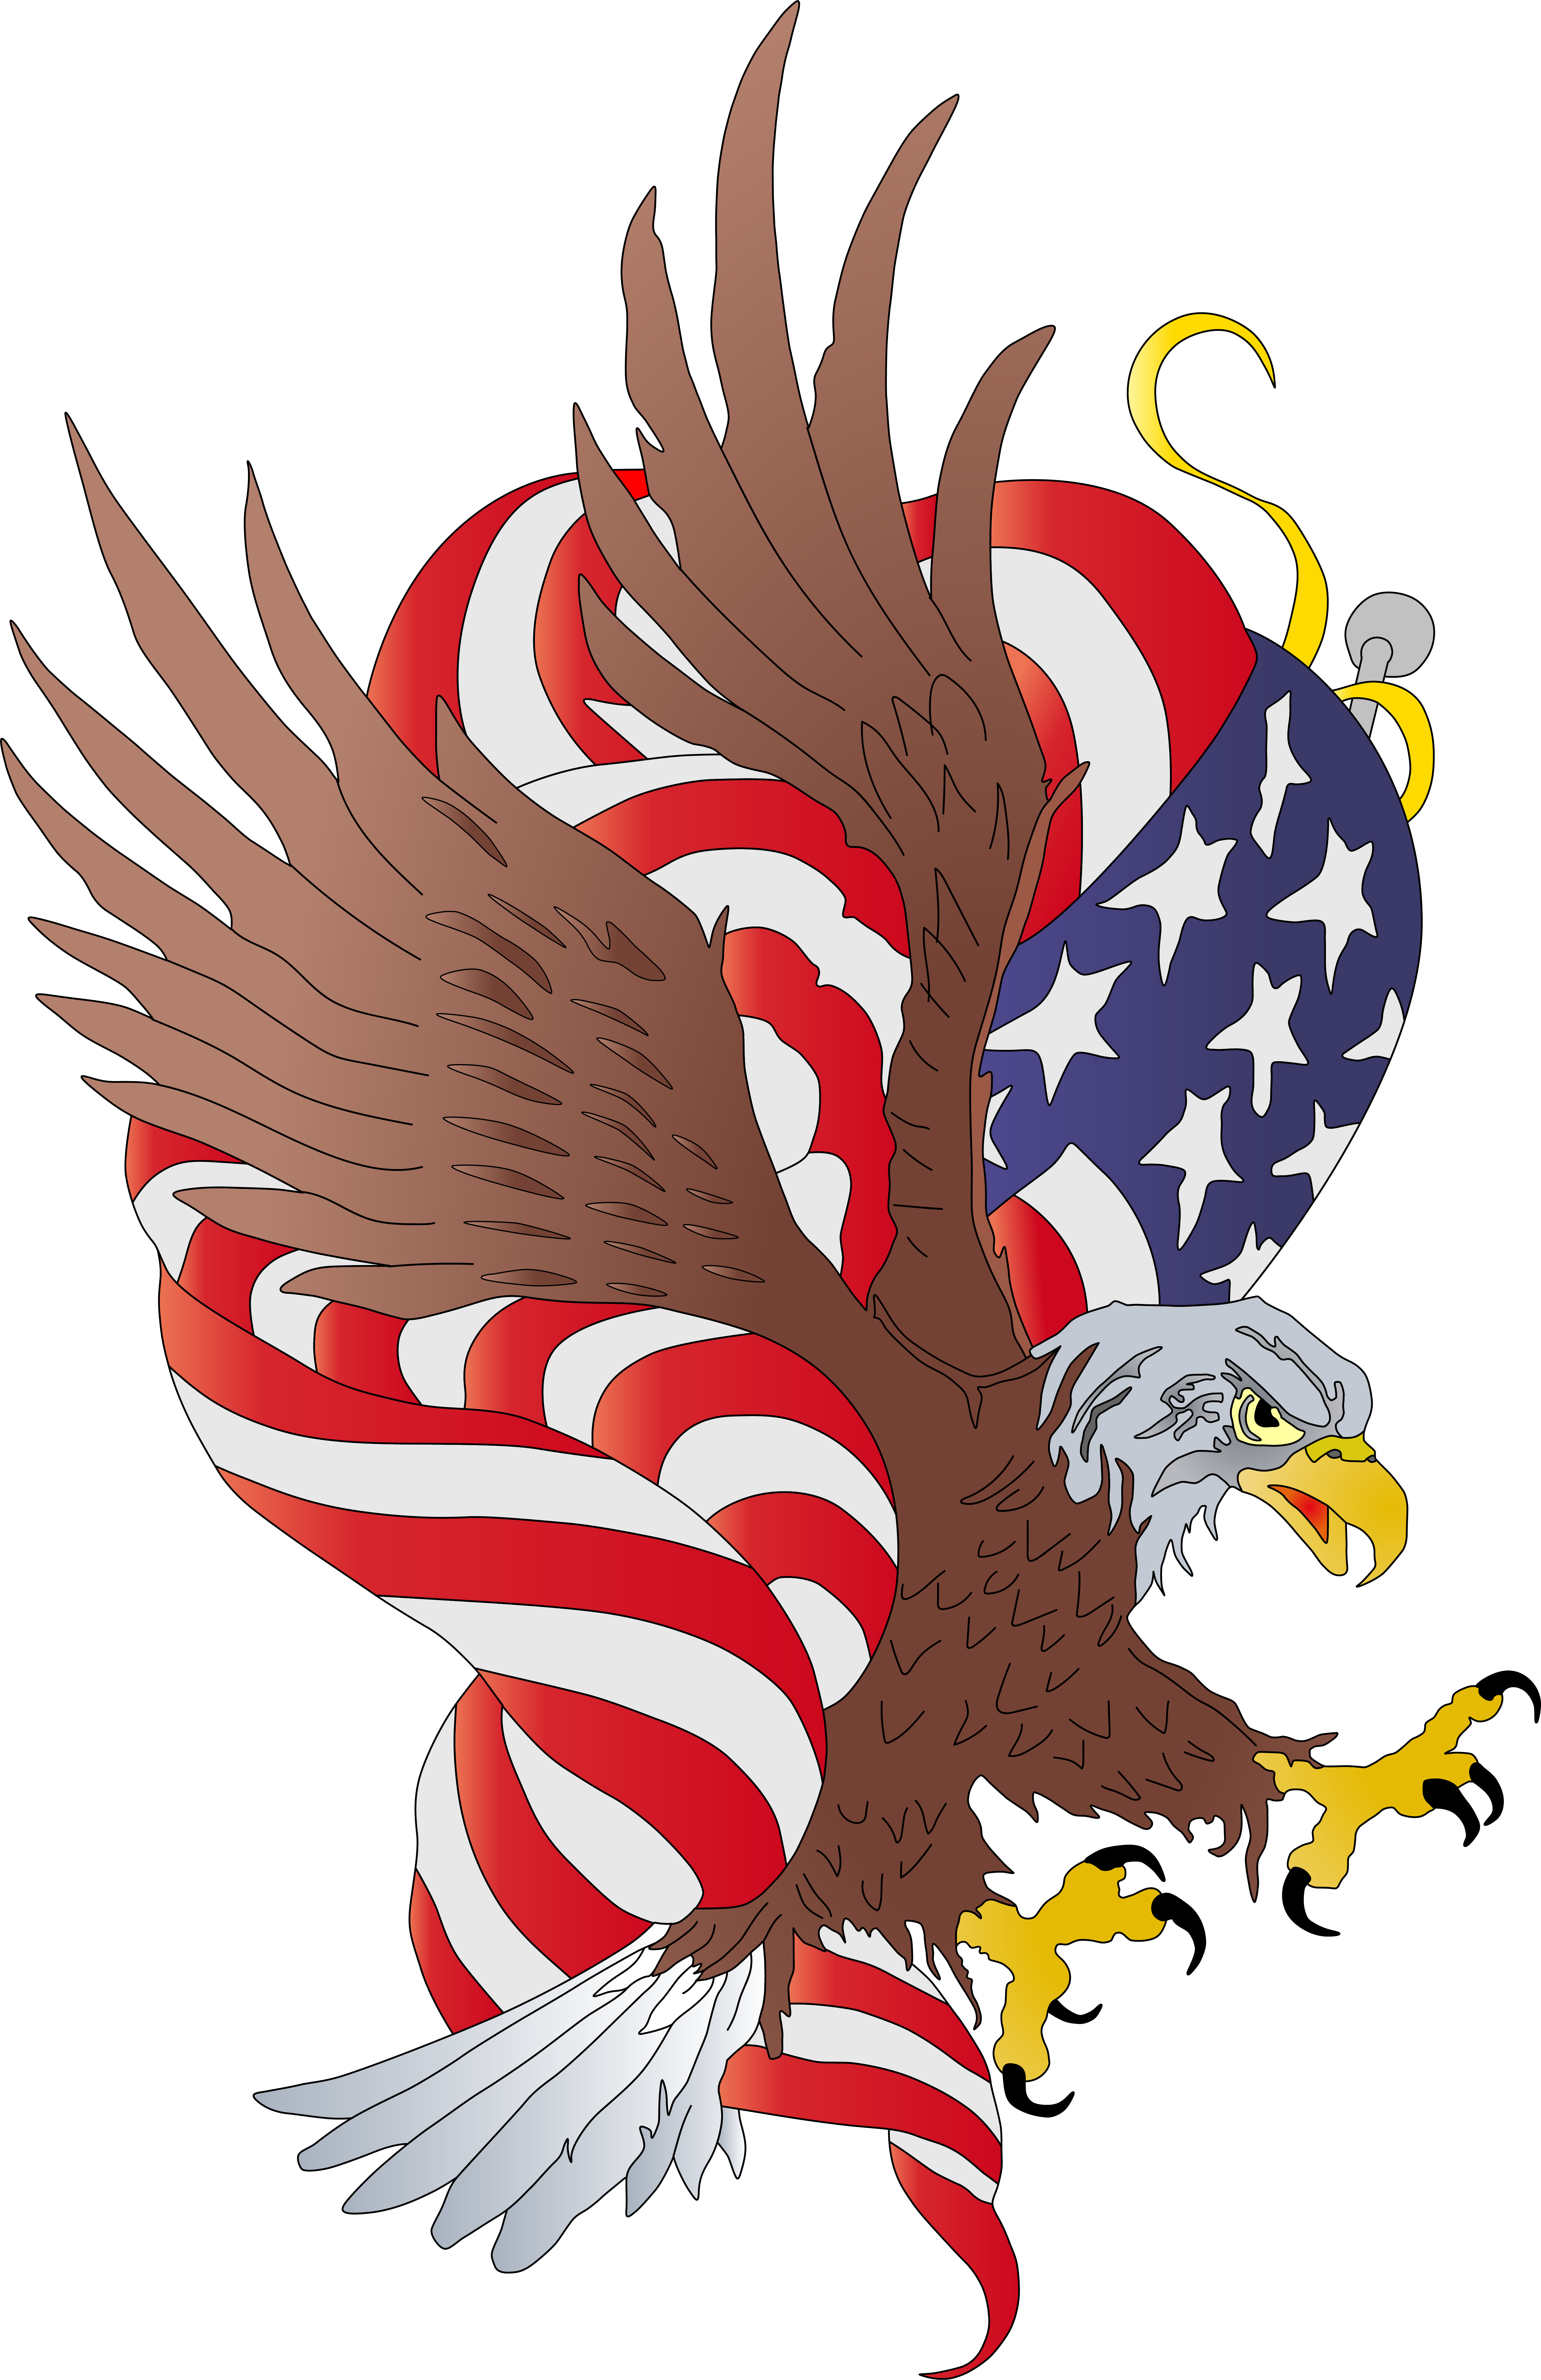 American plumbing licensed minnesota. Hawk clipart strong eagle